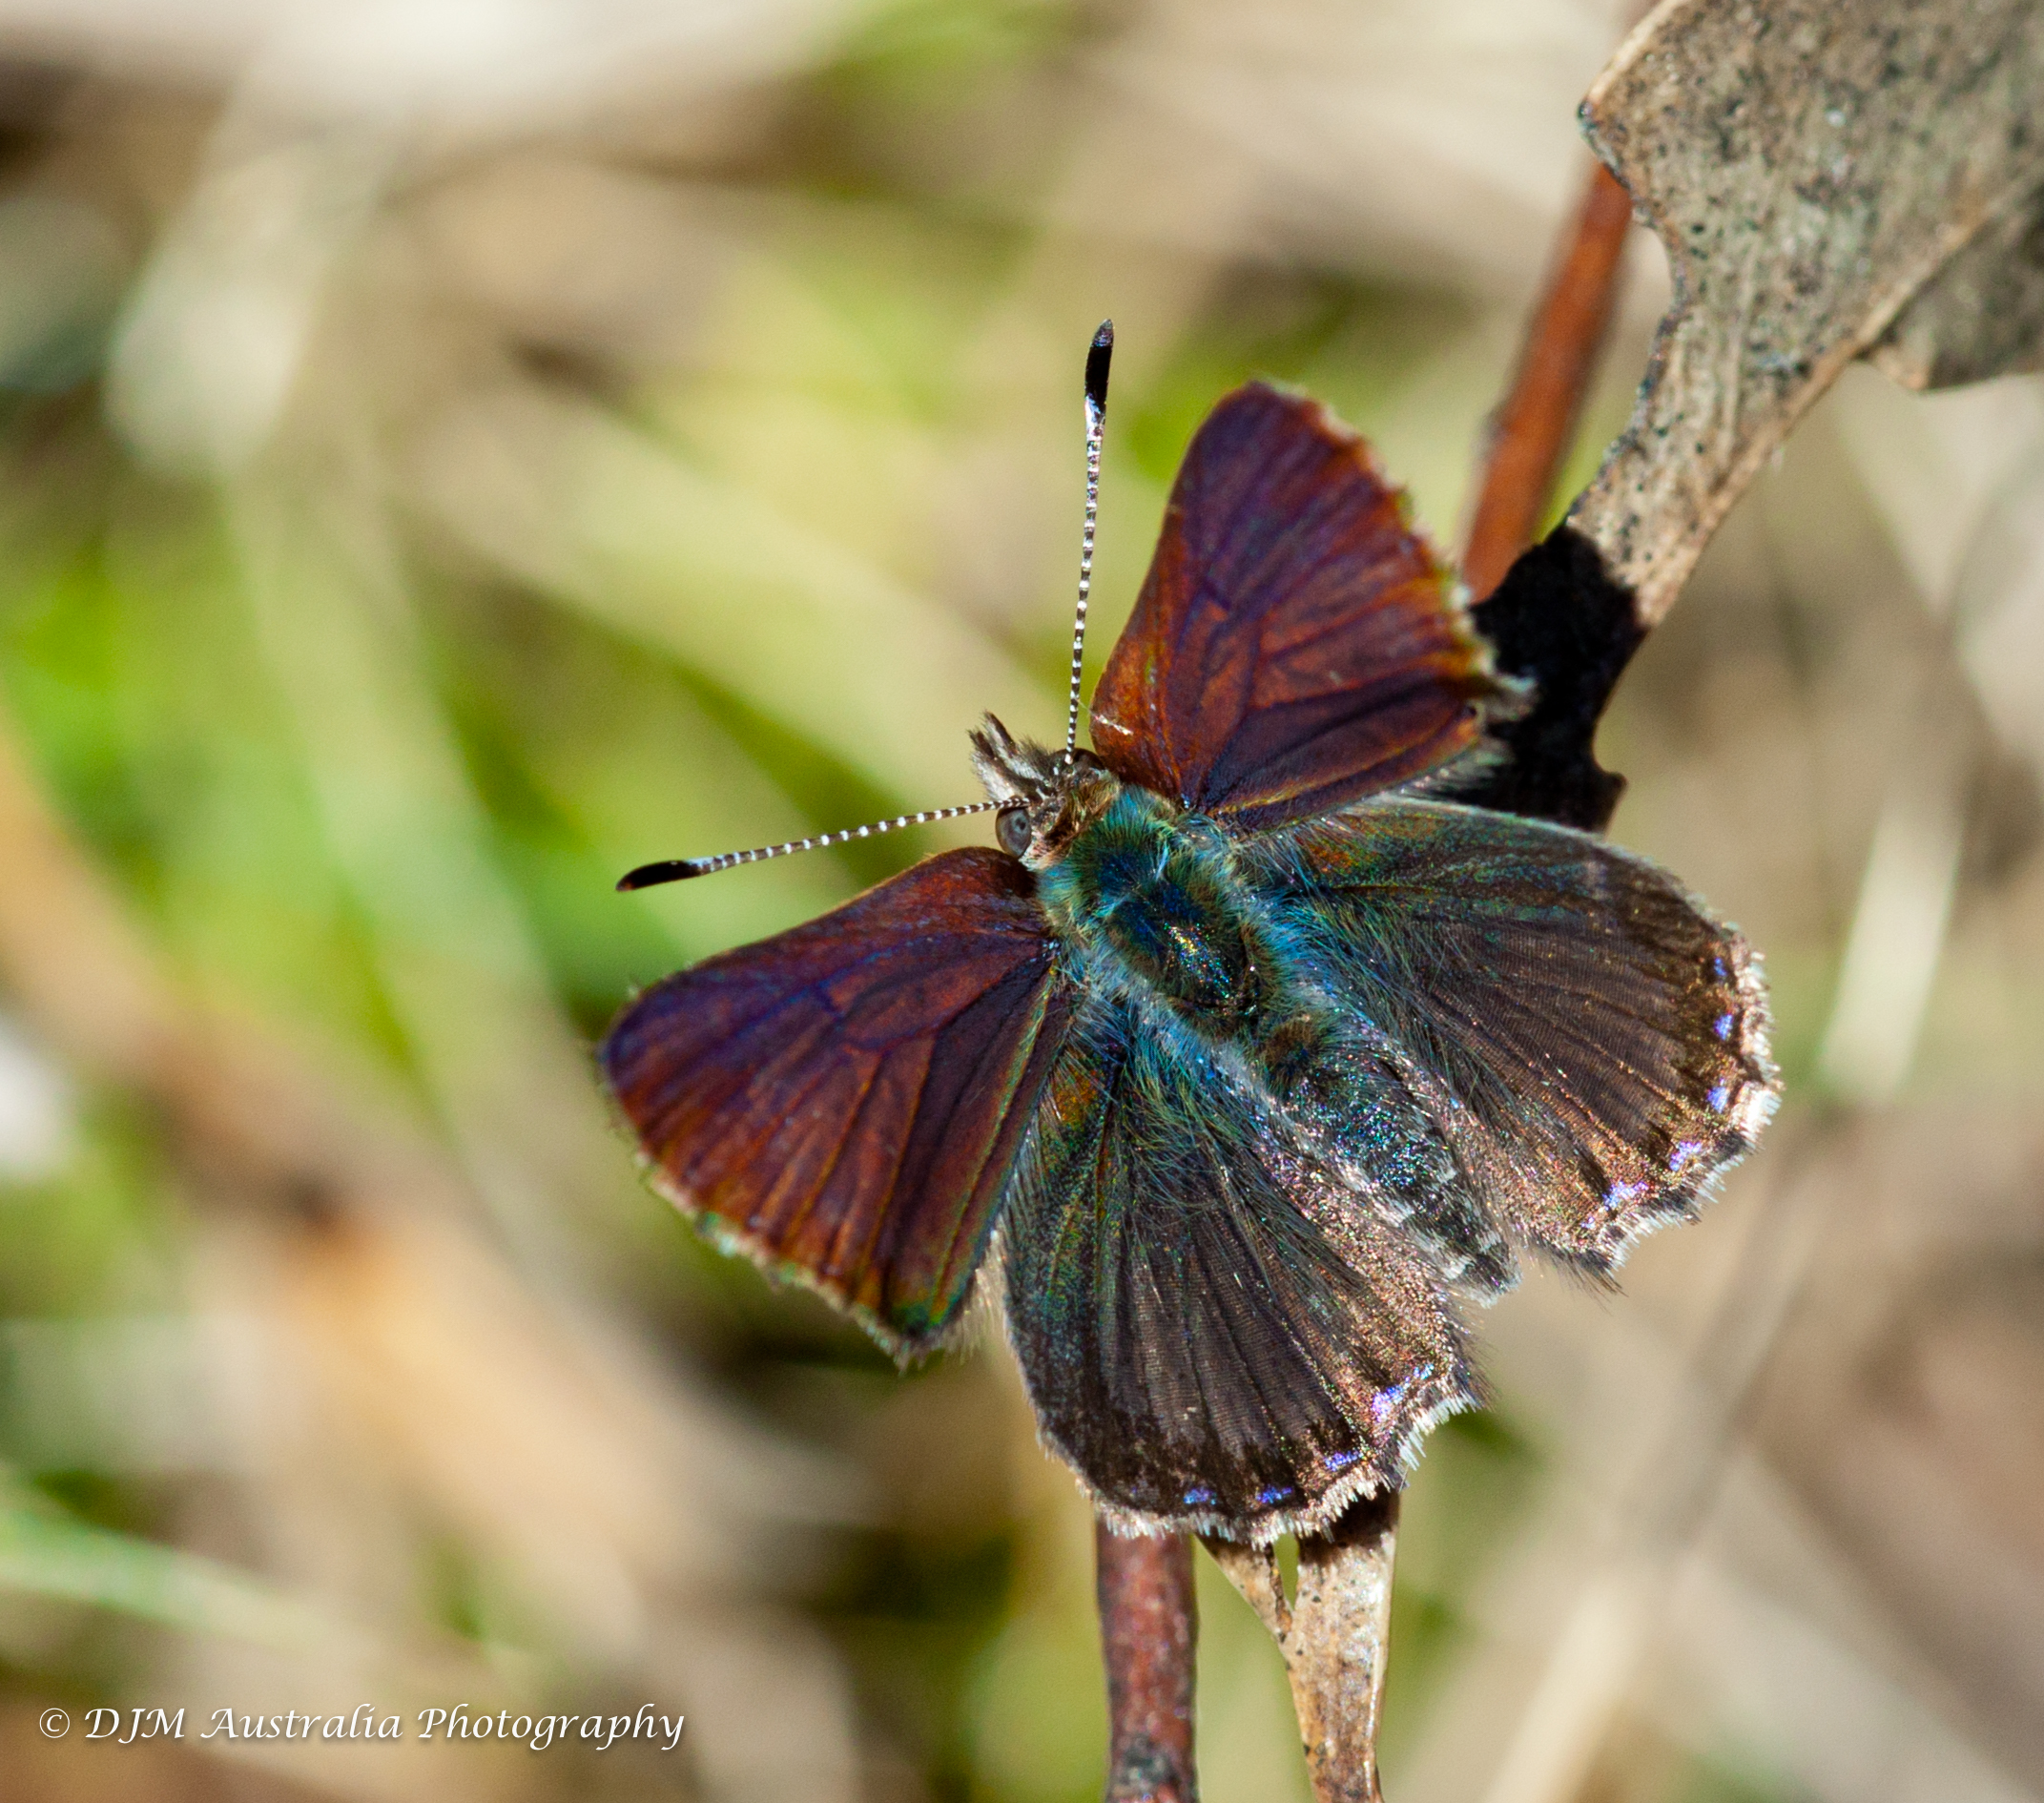 Bathurst Copper Butterfly (image courtesy of DJM Australia Photography)